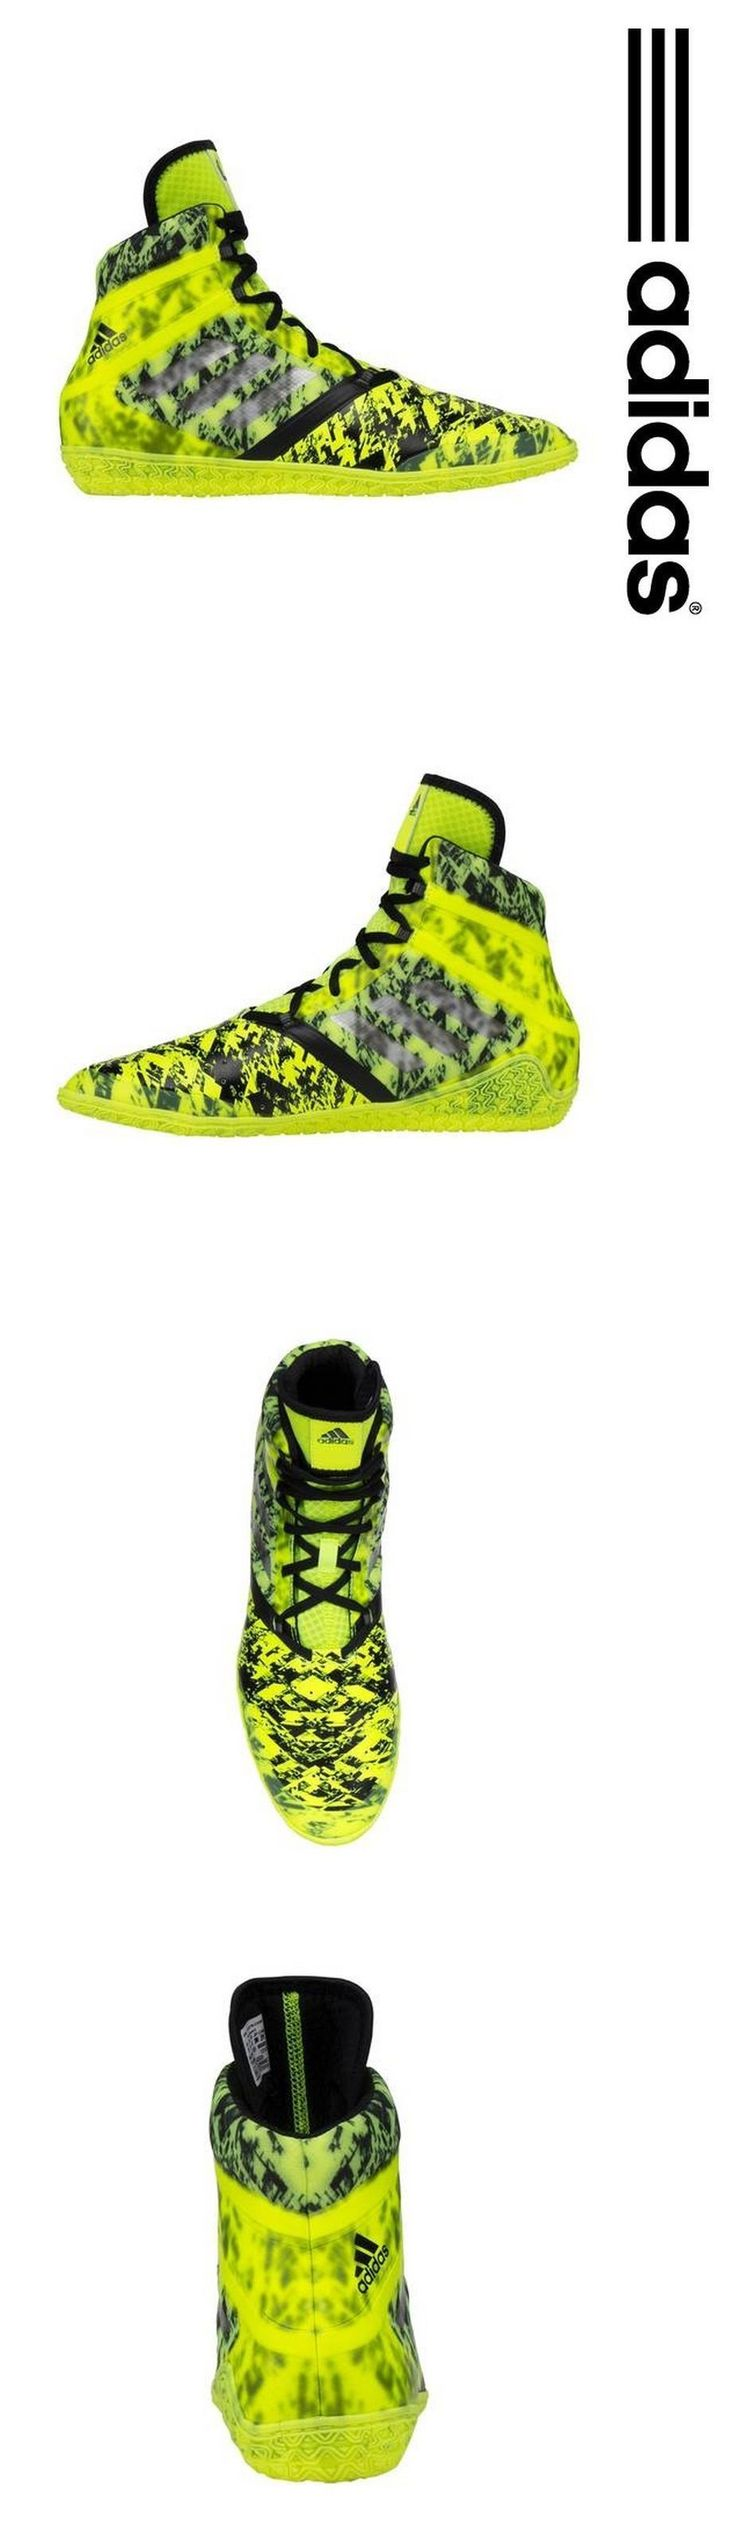 Accessories 36306: Adidas Wrestling Shoes (Boots) Ringerschuhe Flying Impact Chaussures De Lutte BUY IT NOW ONLY: $109.95